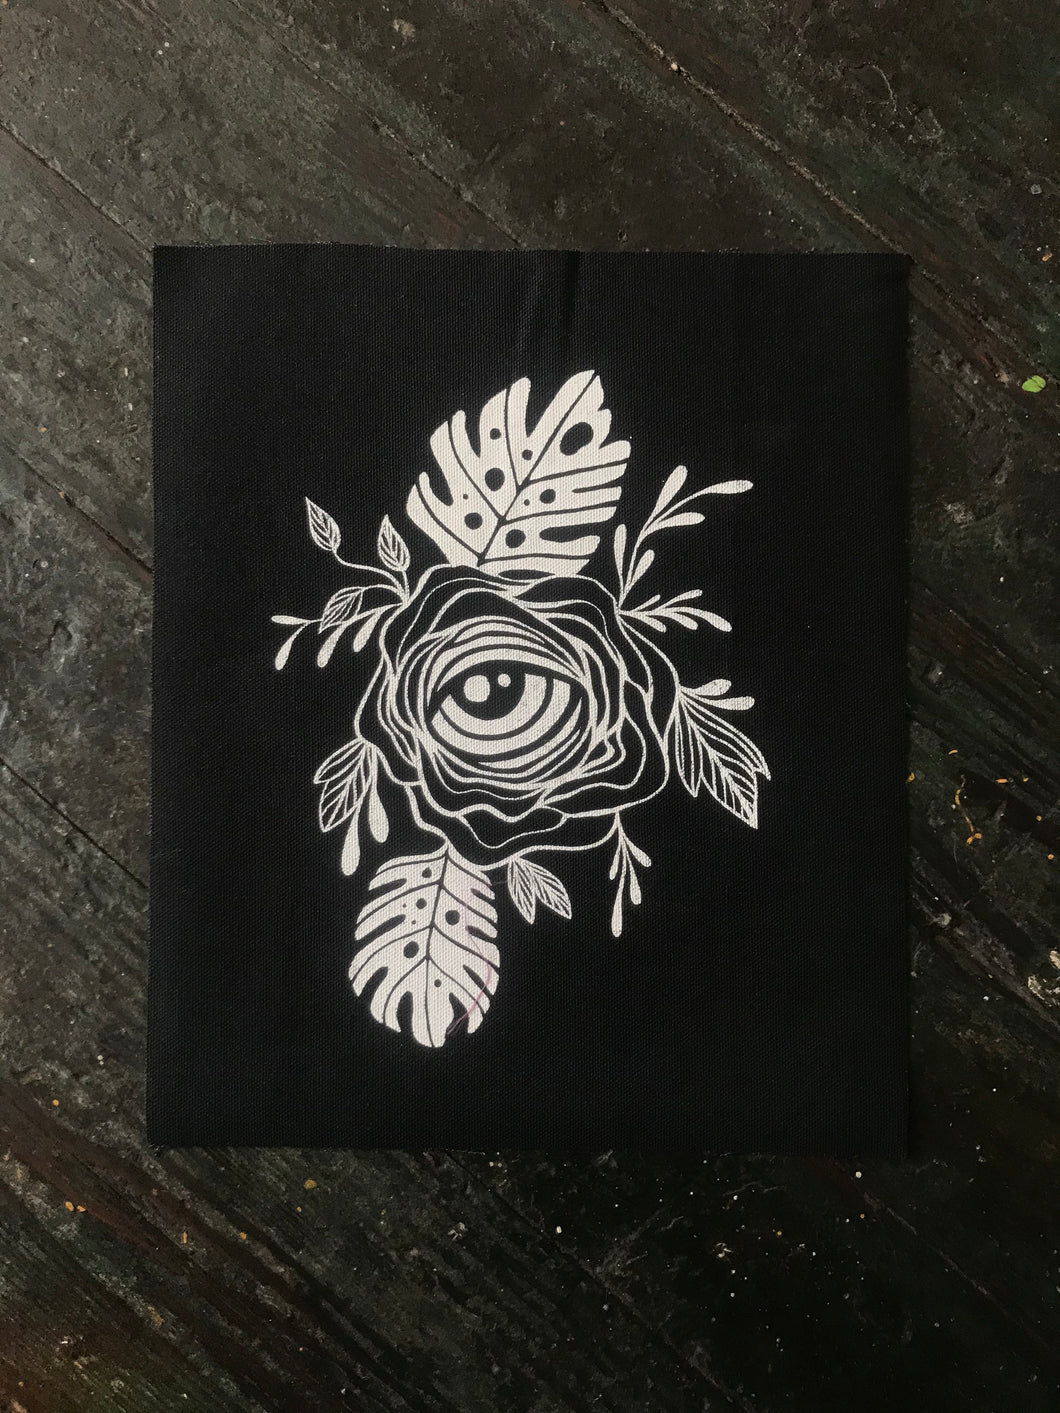 "Eyeball Flower 10""x 12"" Canvas Sew on Patch"